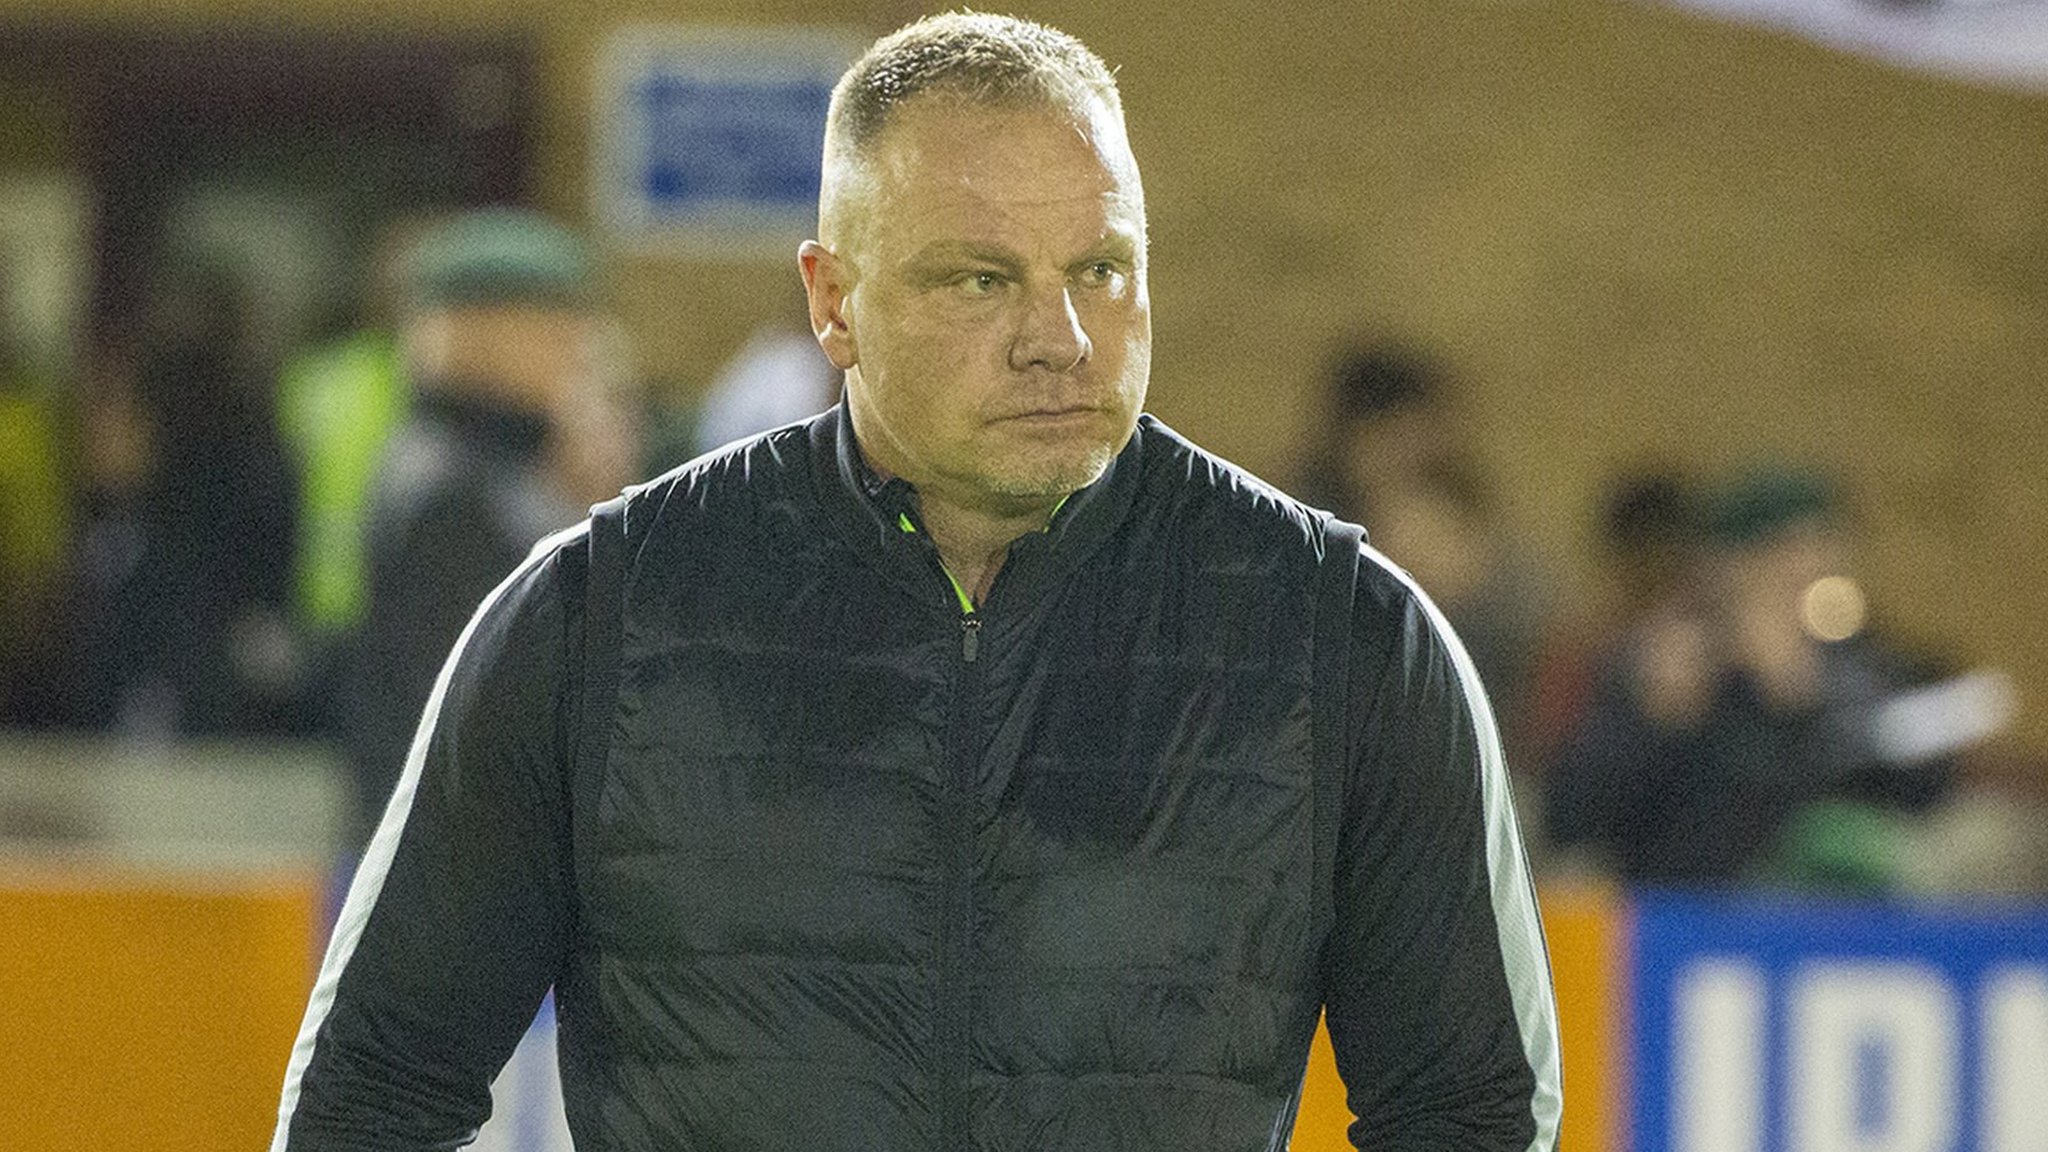 Scottish Challenge Cup: Connah's Quay Nomads 'hungry' to reach final